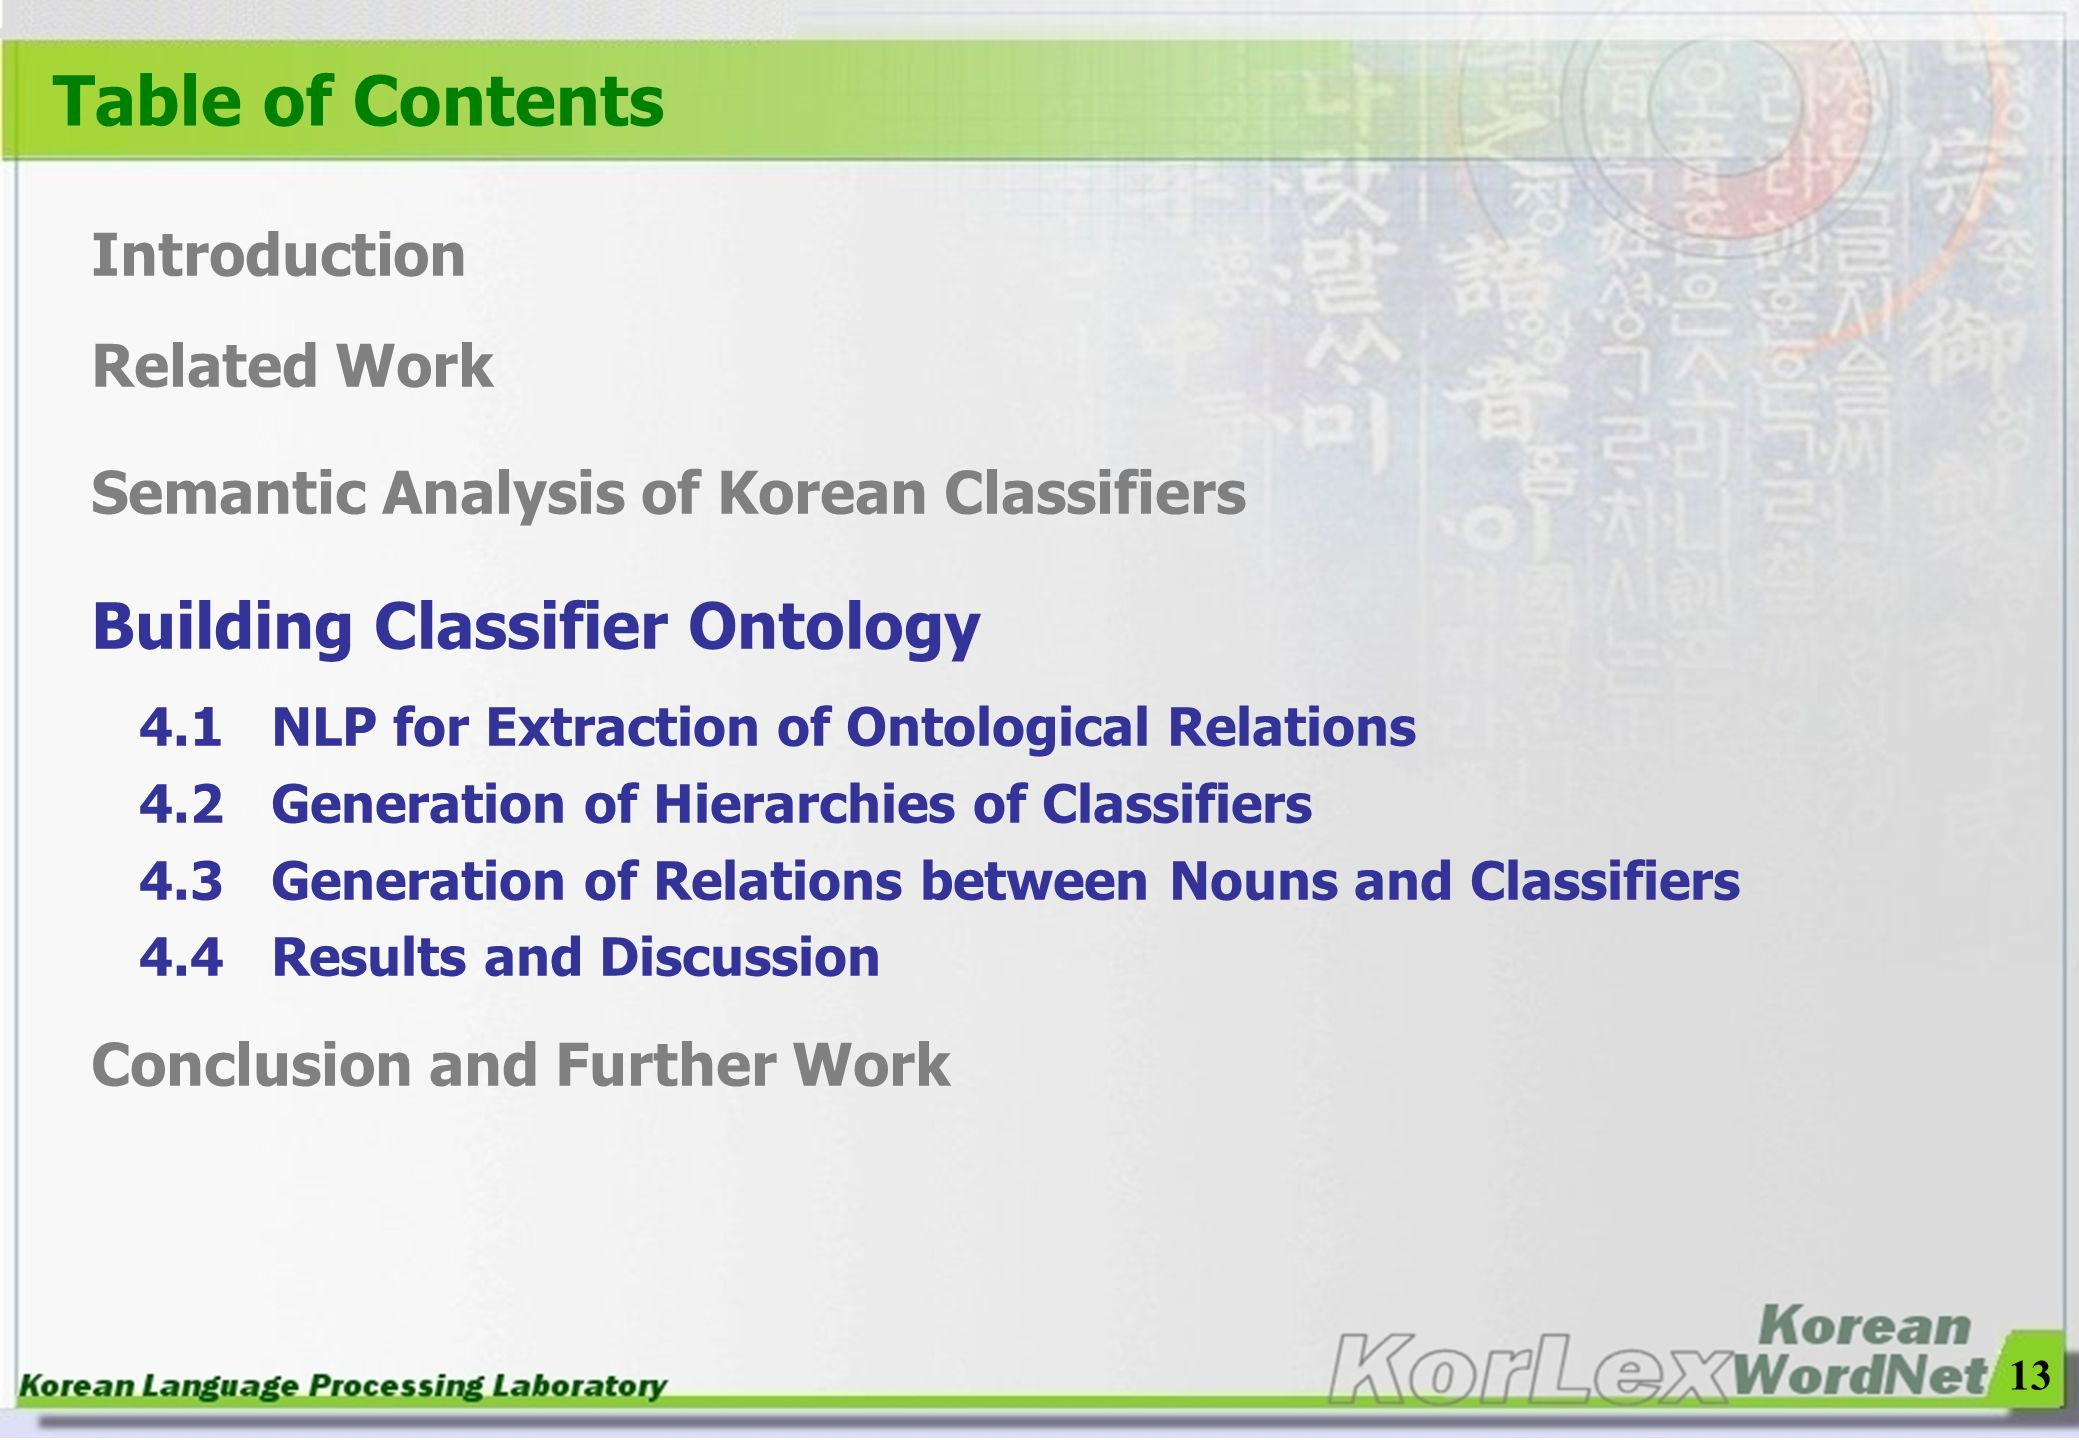 13 Table of Contents Introduction Related Work Semantic Analysis of Korean Classifiers Building Classifier Ontology 4.1 NLP for Extraction of Ontologi